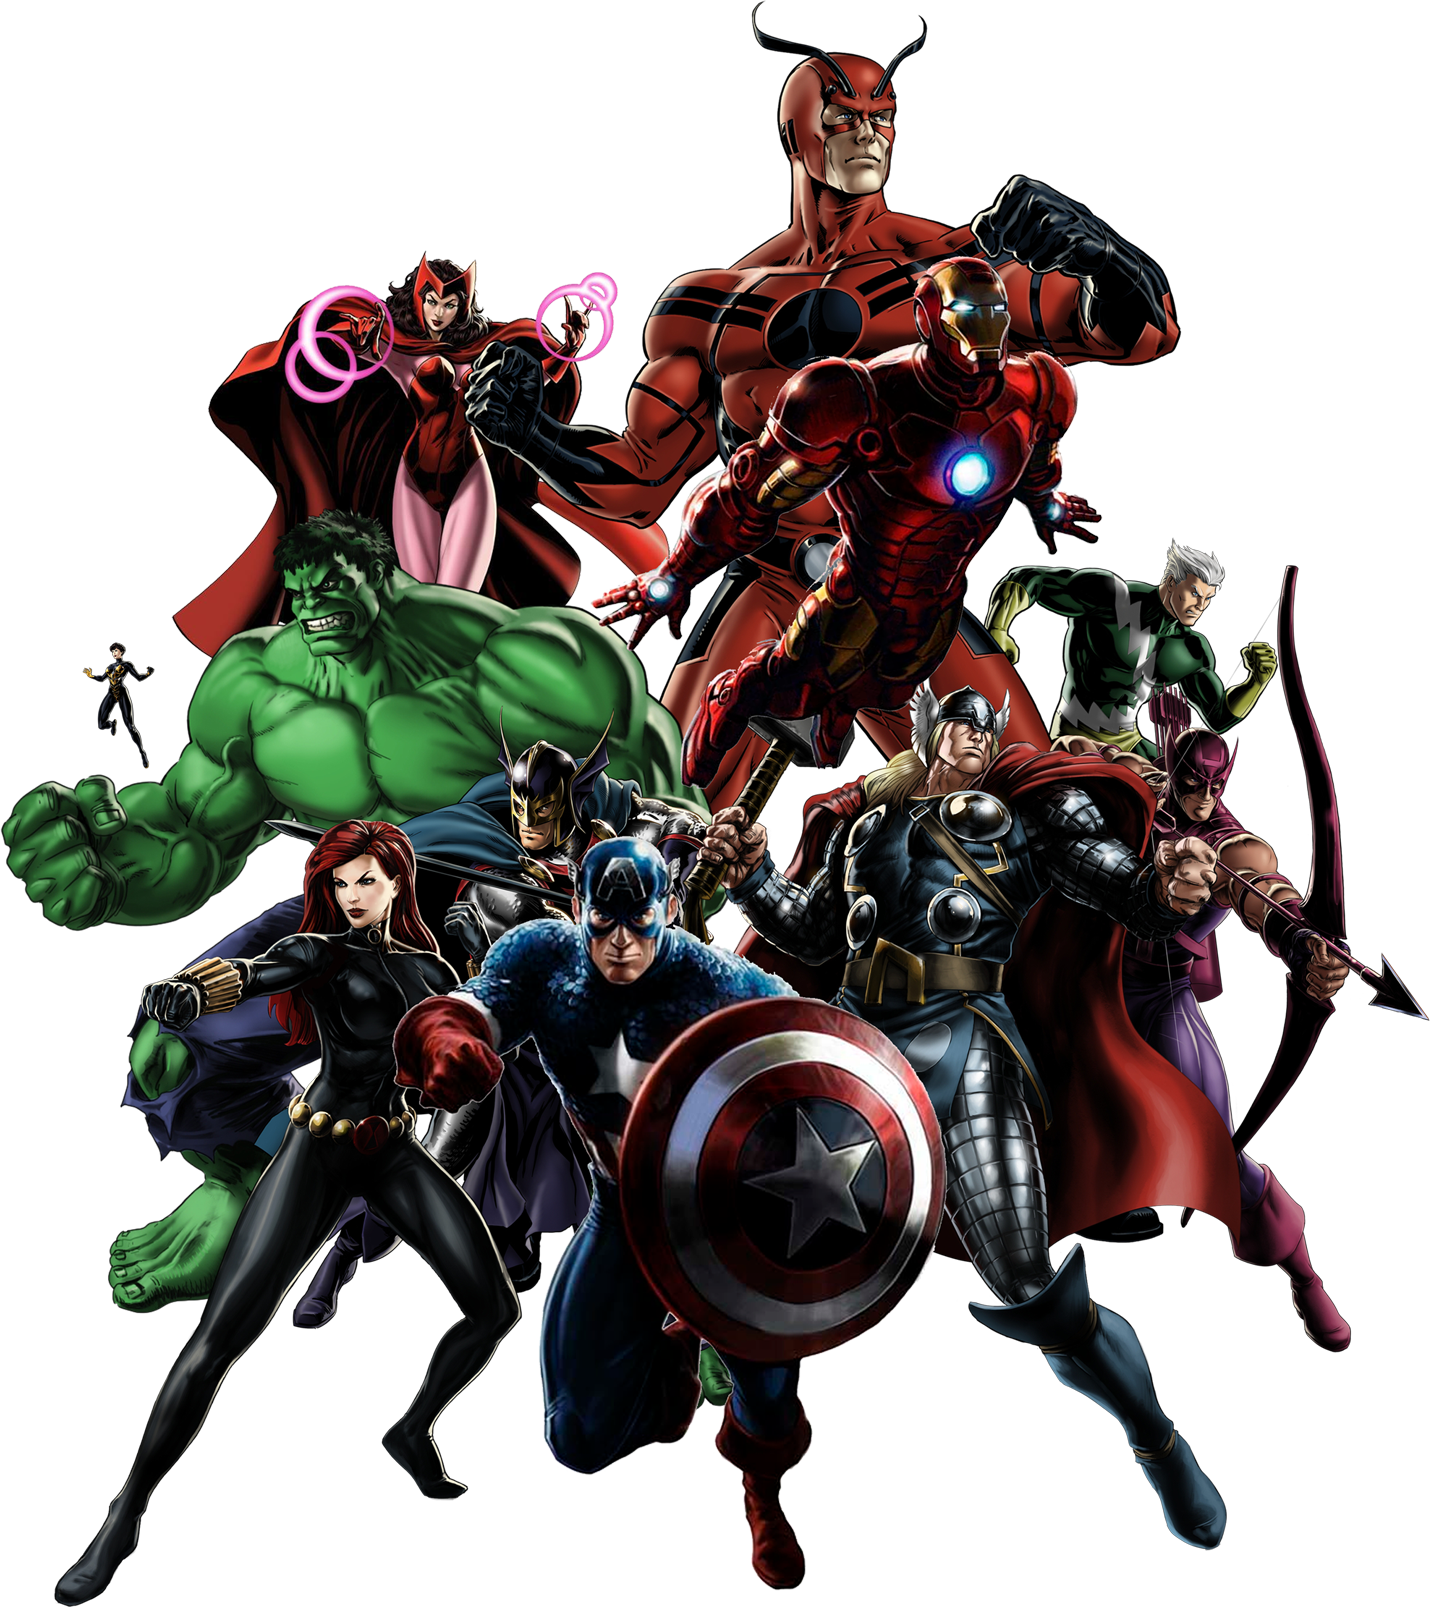 banner black and white download Png mart. Avengers clipart